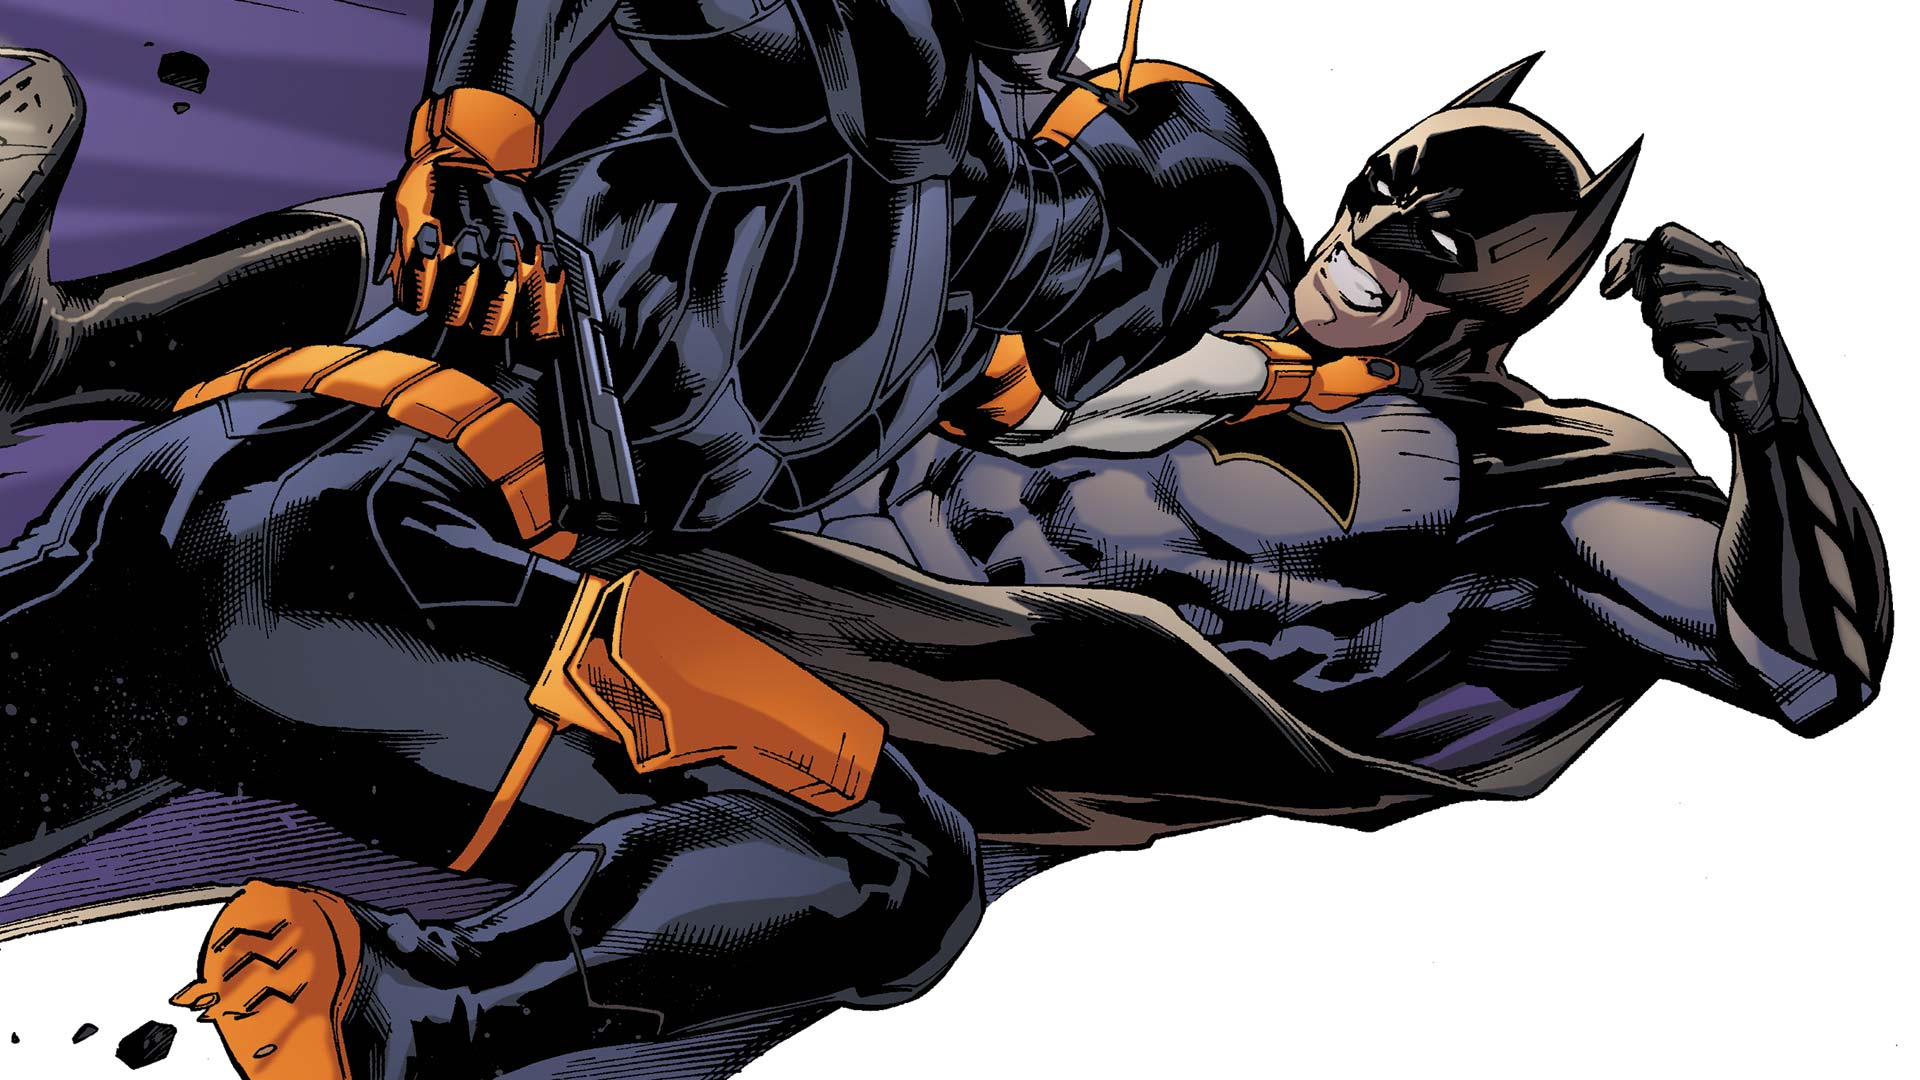 Deathstroke Vs Batman Sins Of The Fathers